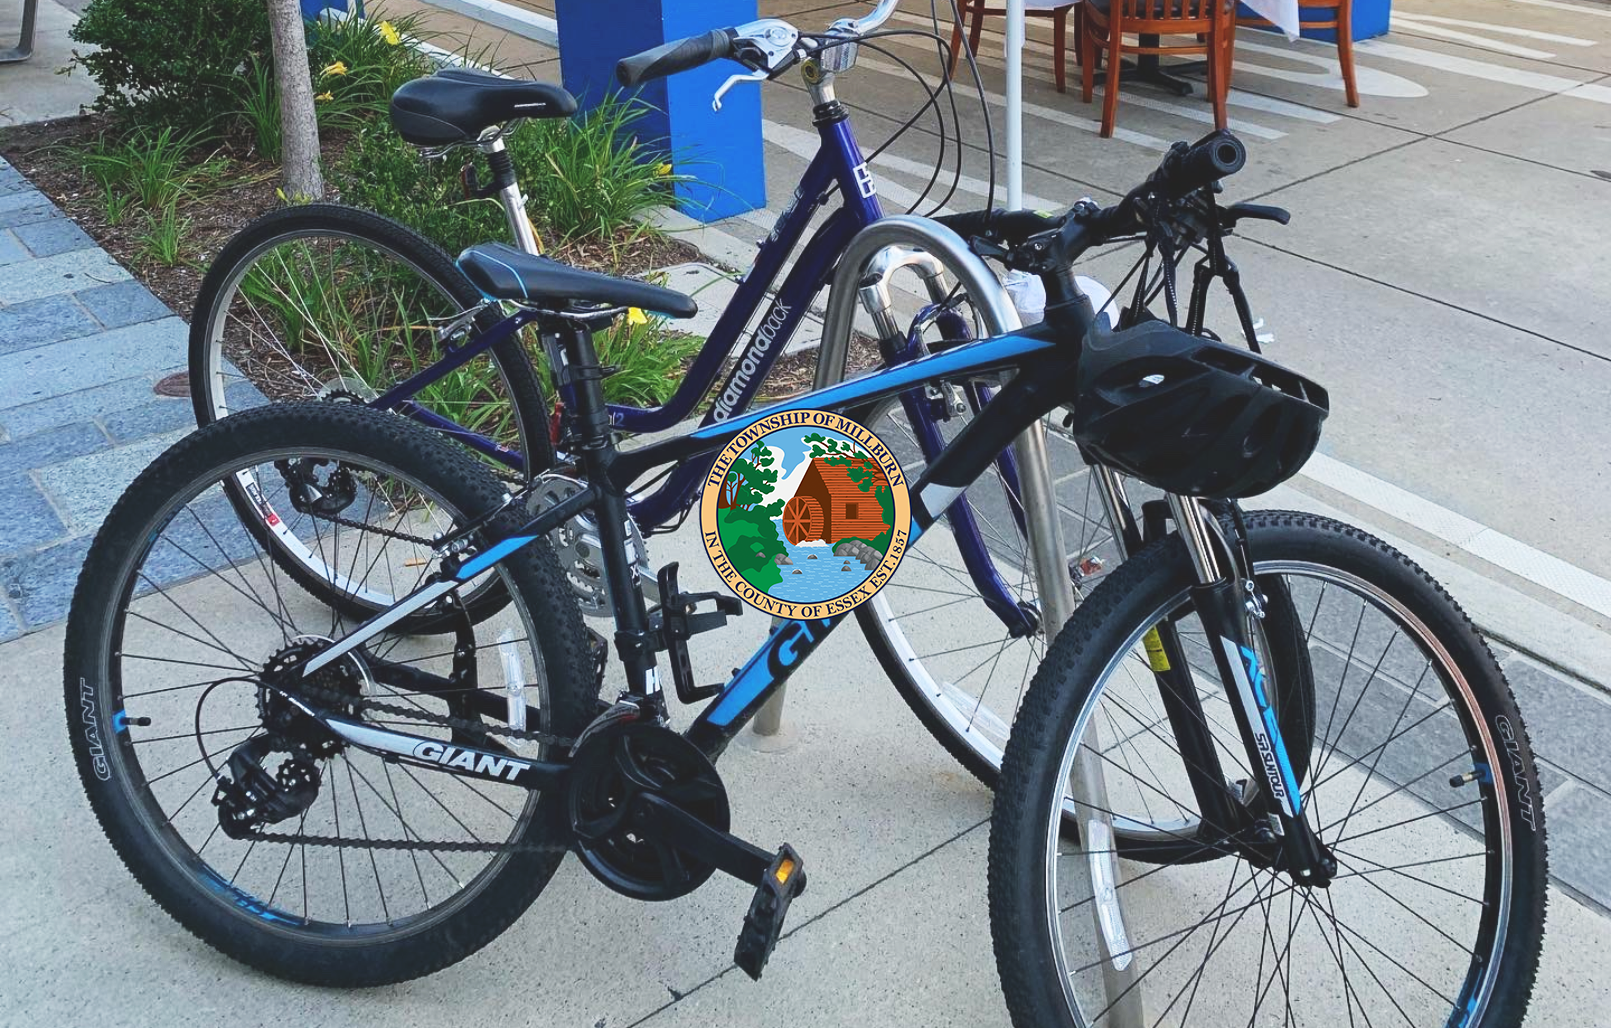 Two blue bicycles locked to a pole in Downtown Millburn near white outdoor dining tent